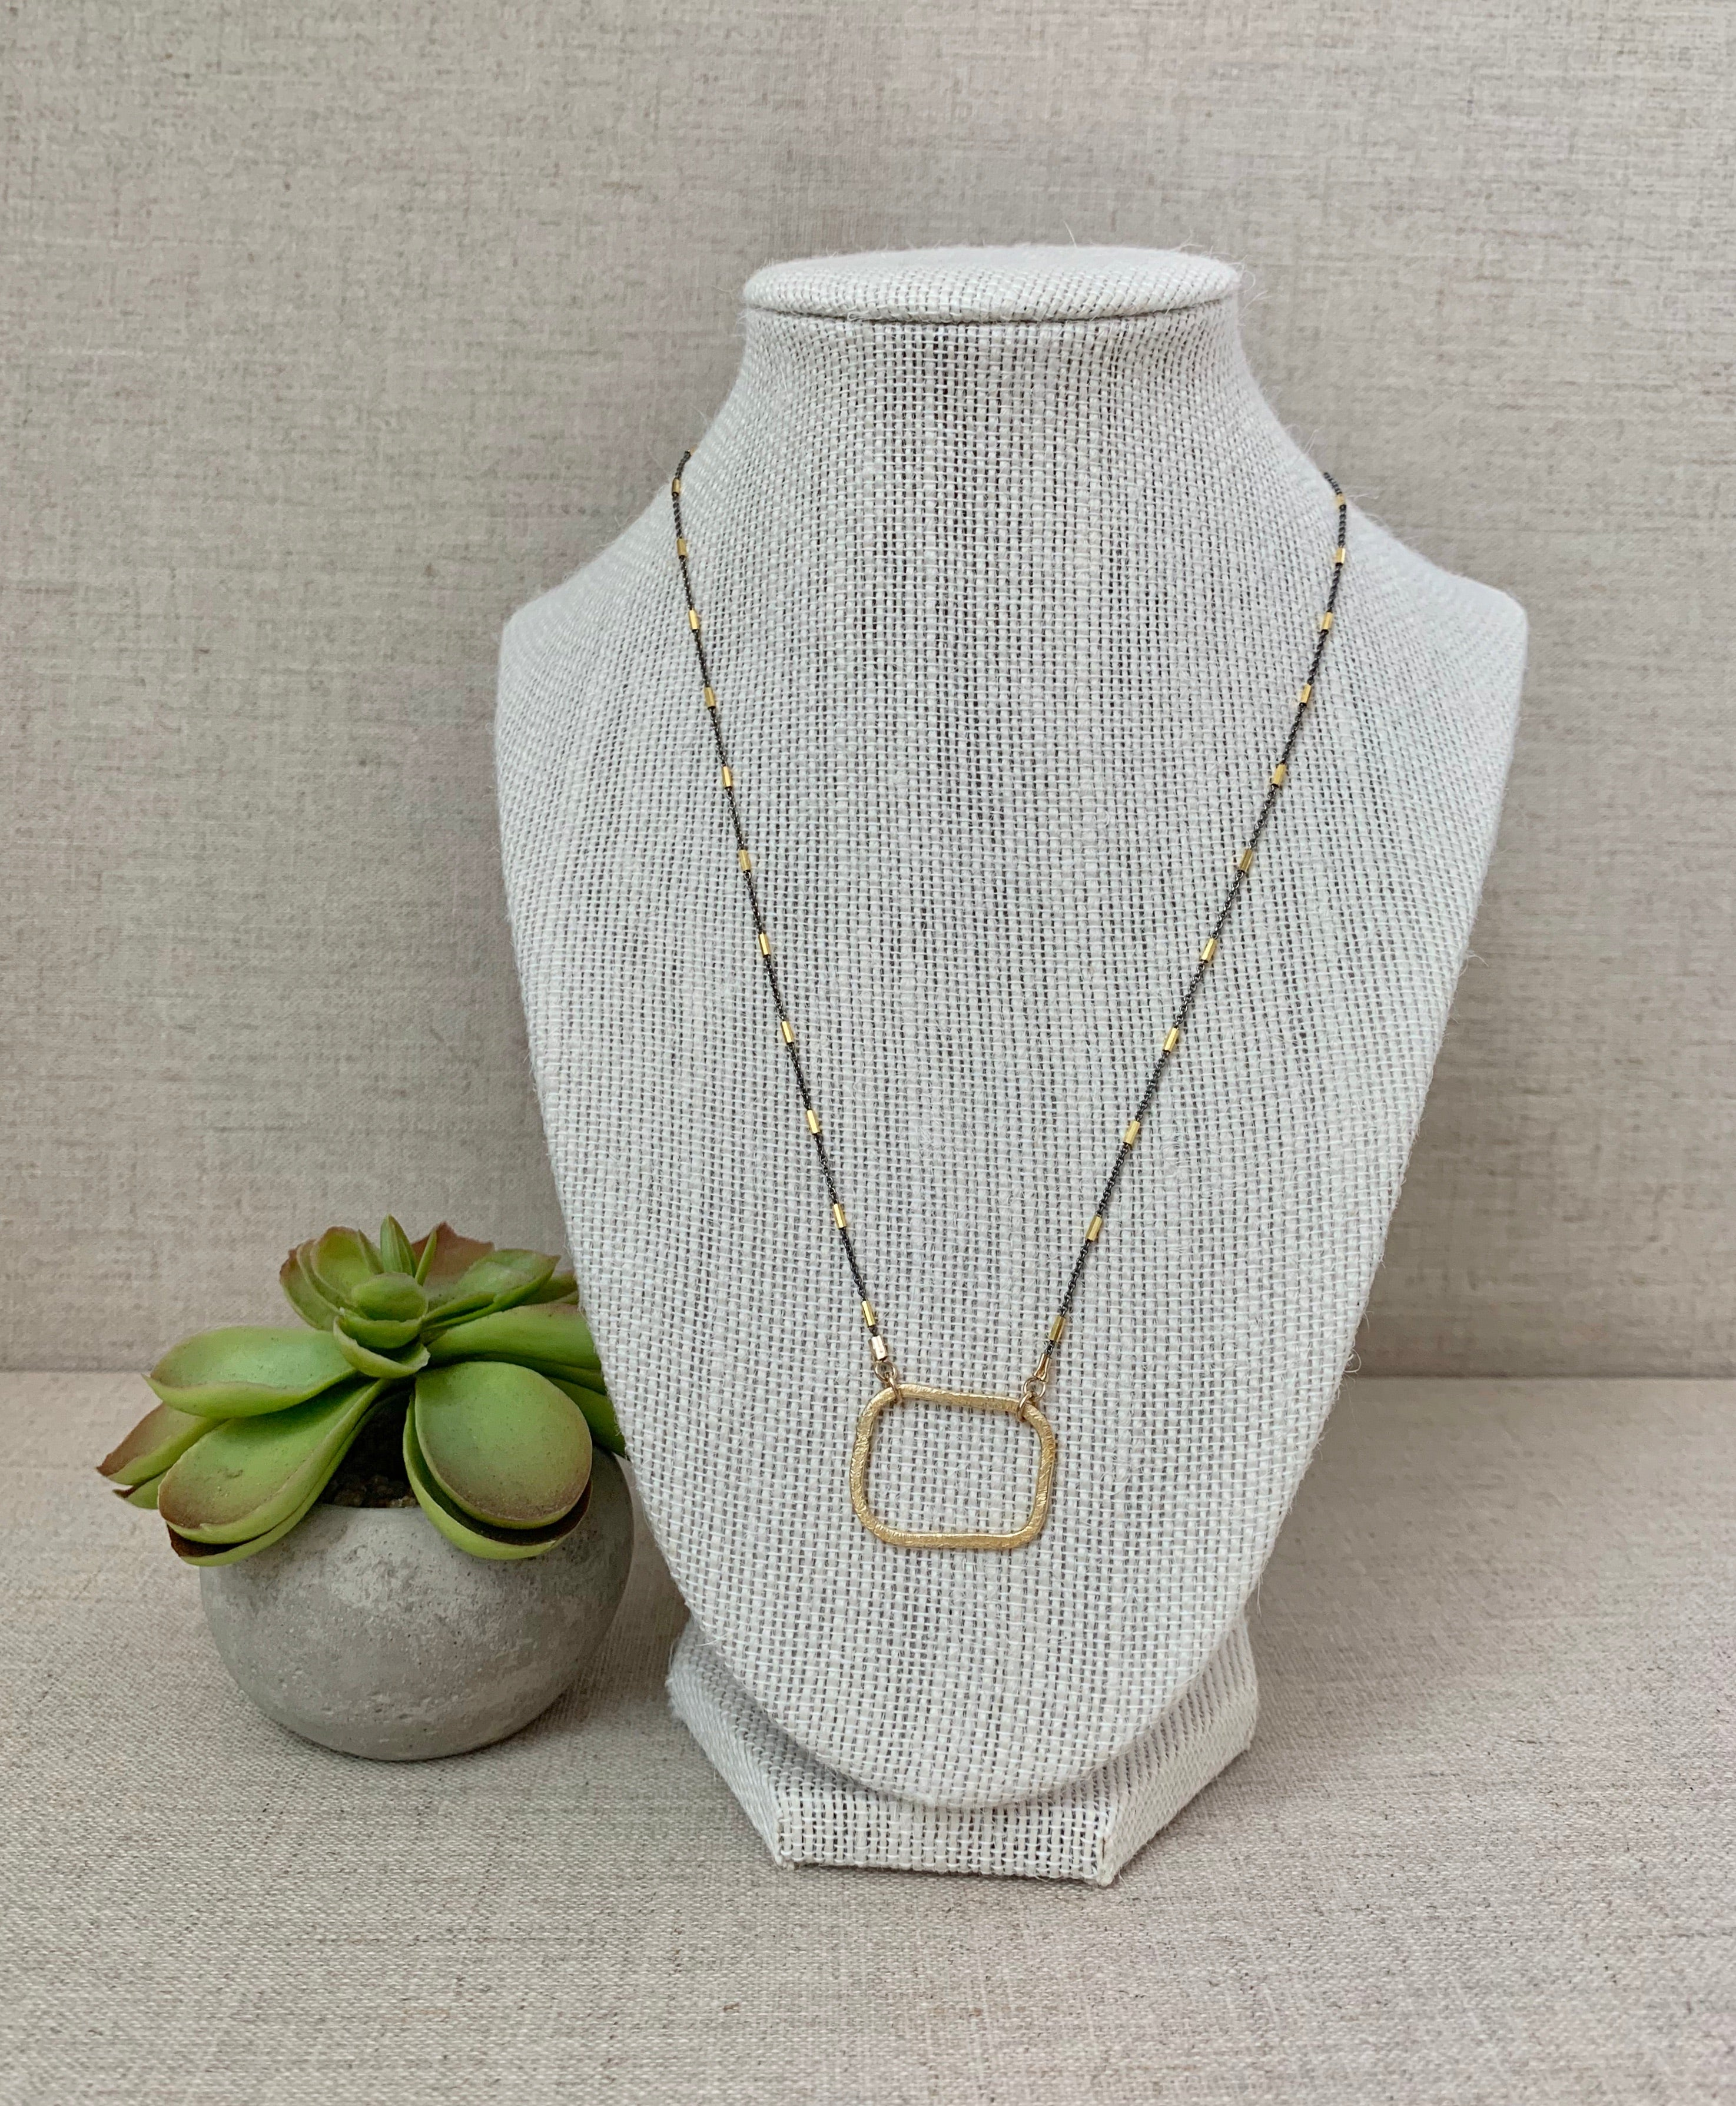 The Brooklyn Bridge Necklace - Christiana Layman Designs